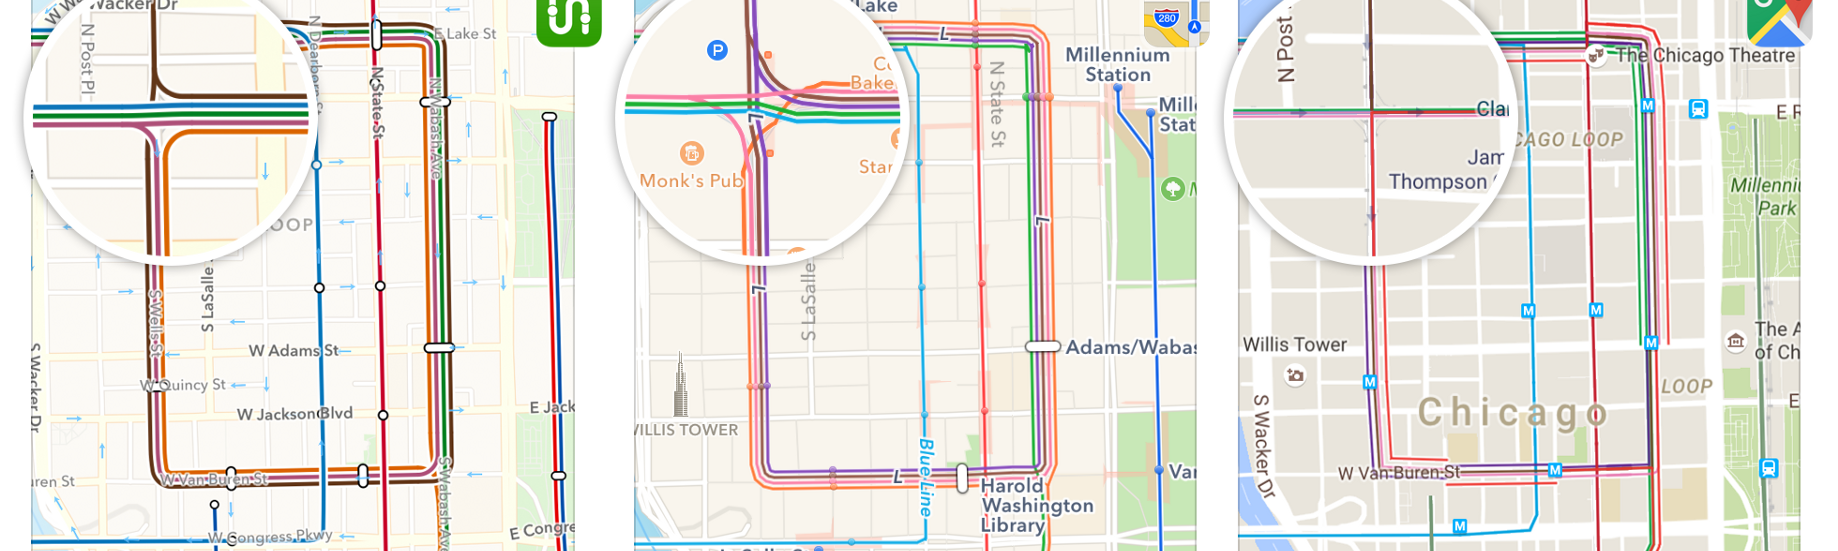 Custom Subway Map Creator.Transit Maps Apple Vs Google Vs Us Transit Medium